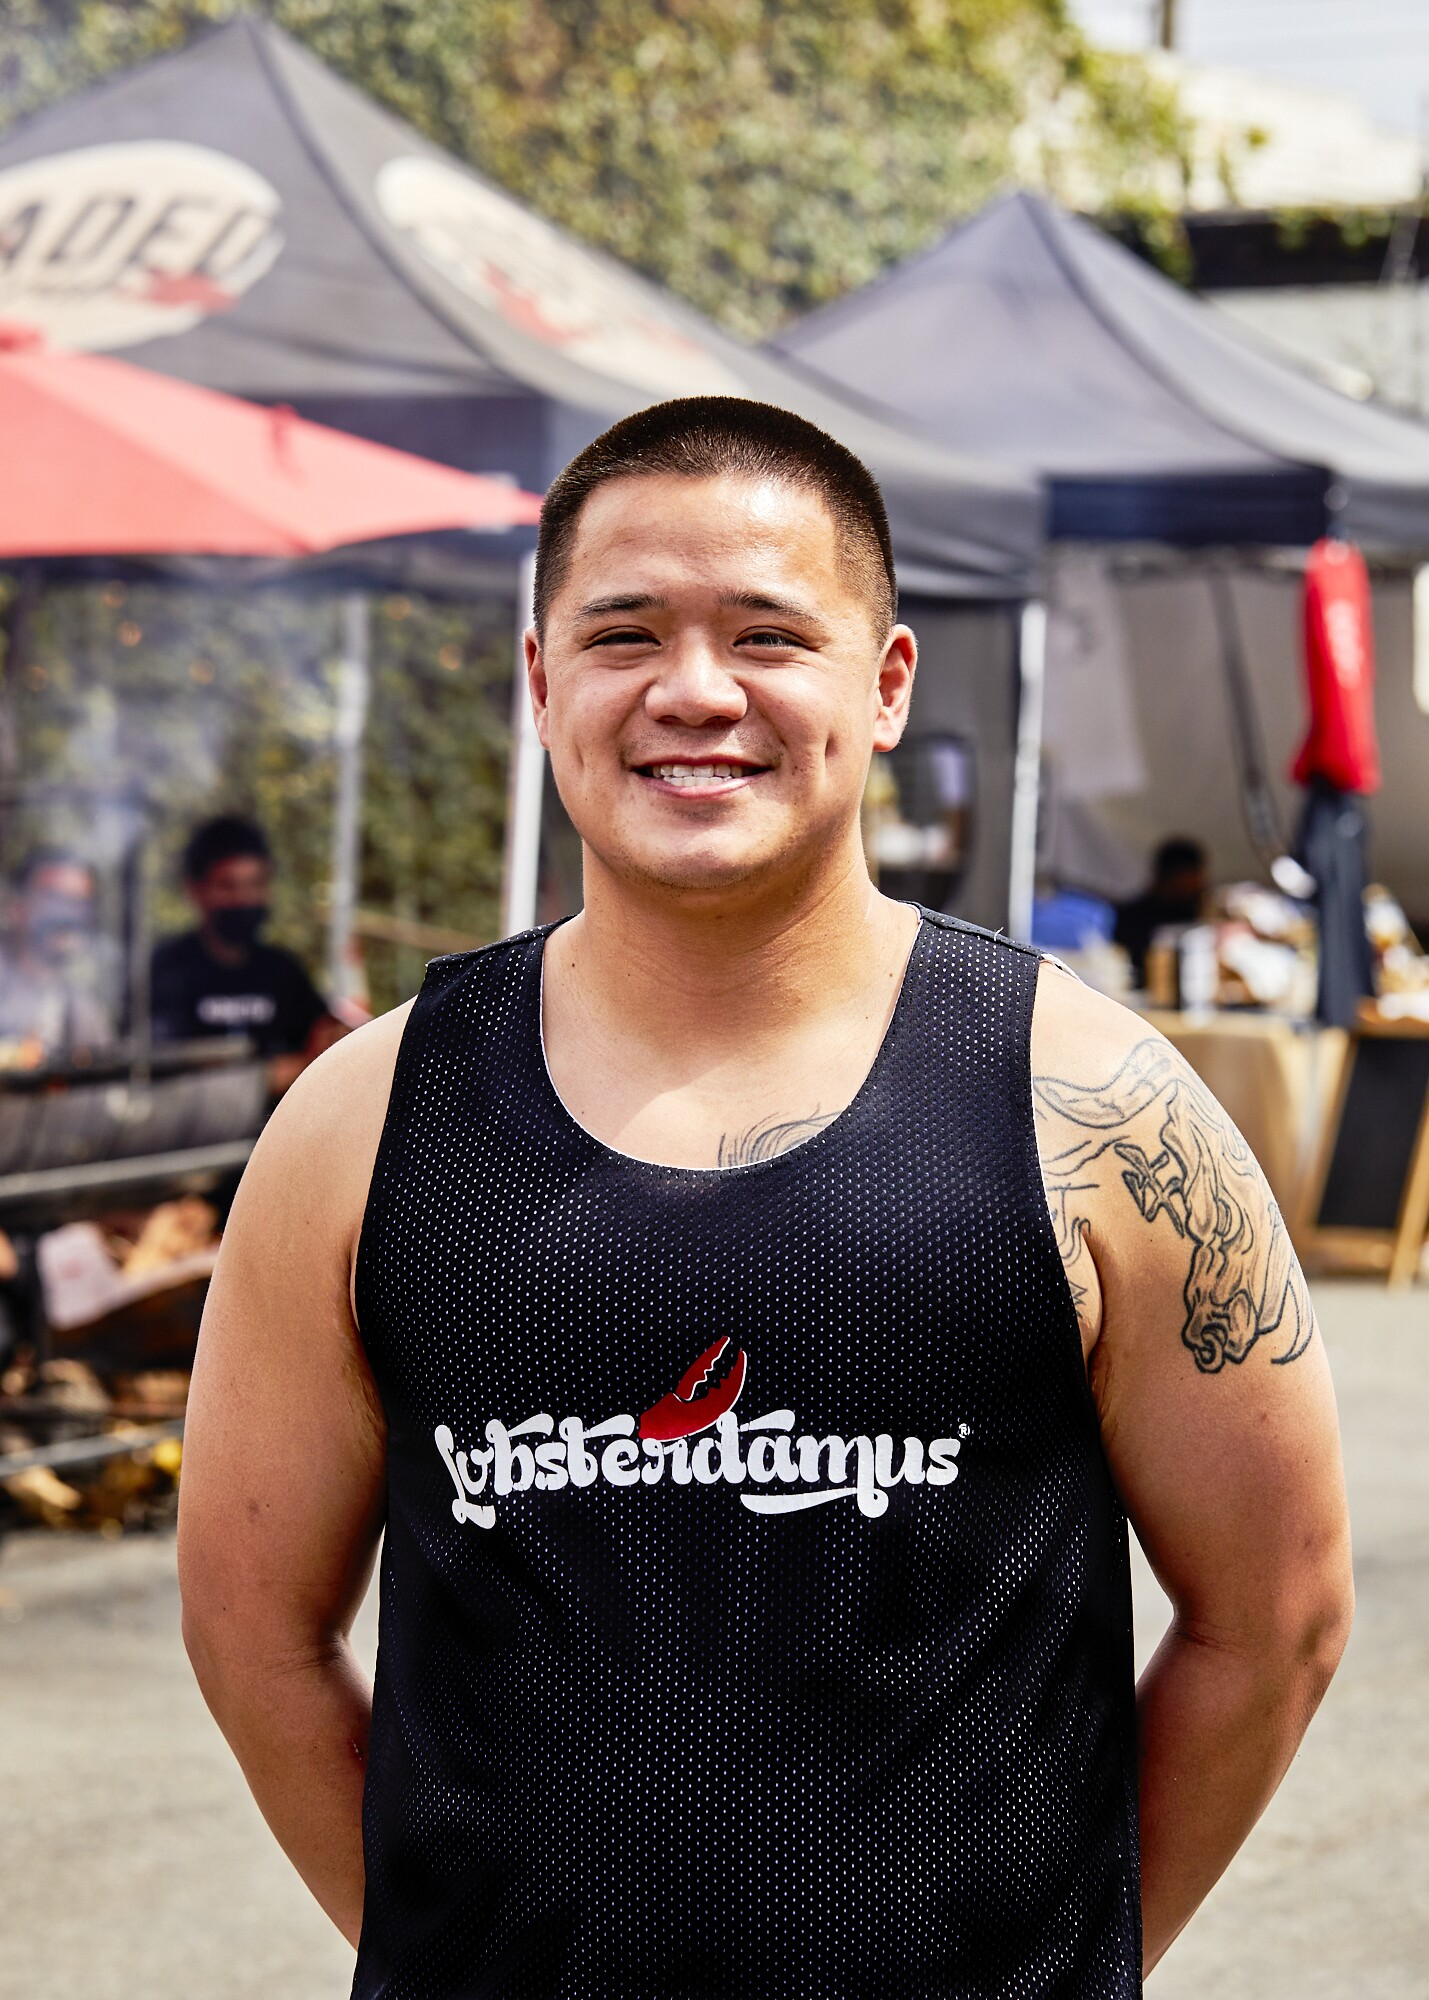 """Francis Reyes, co-owner of Lobsterdamus and Mano Po, poses at the FilLed Market. He's wearing a black tank top that reads, """"Lobsterdamus,"""" with his arms behind his back."""